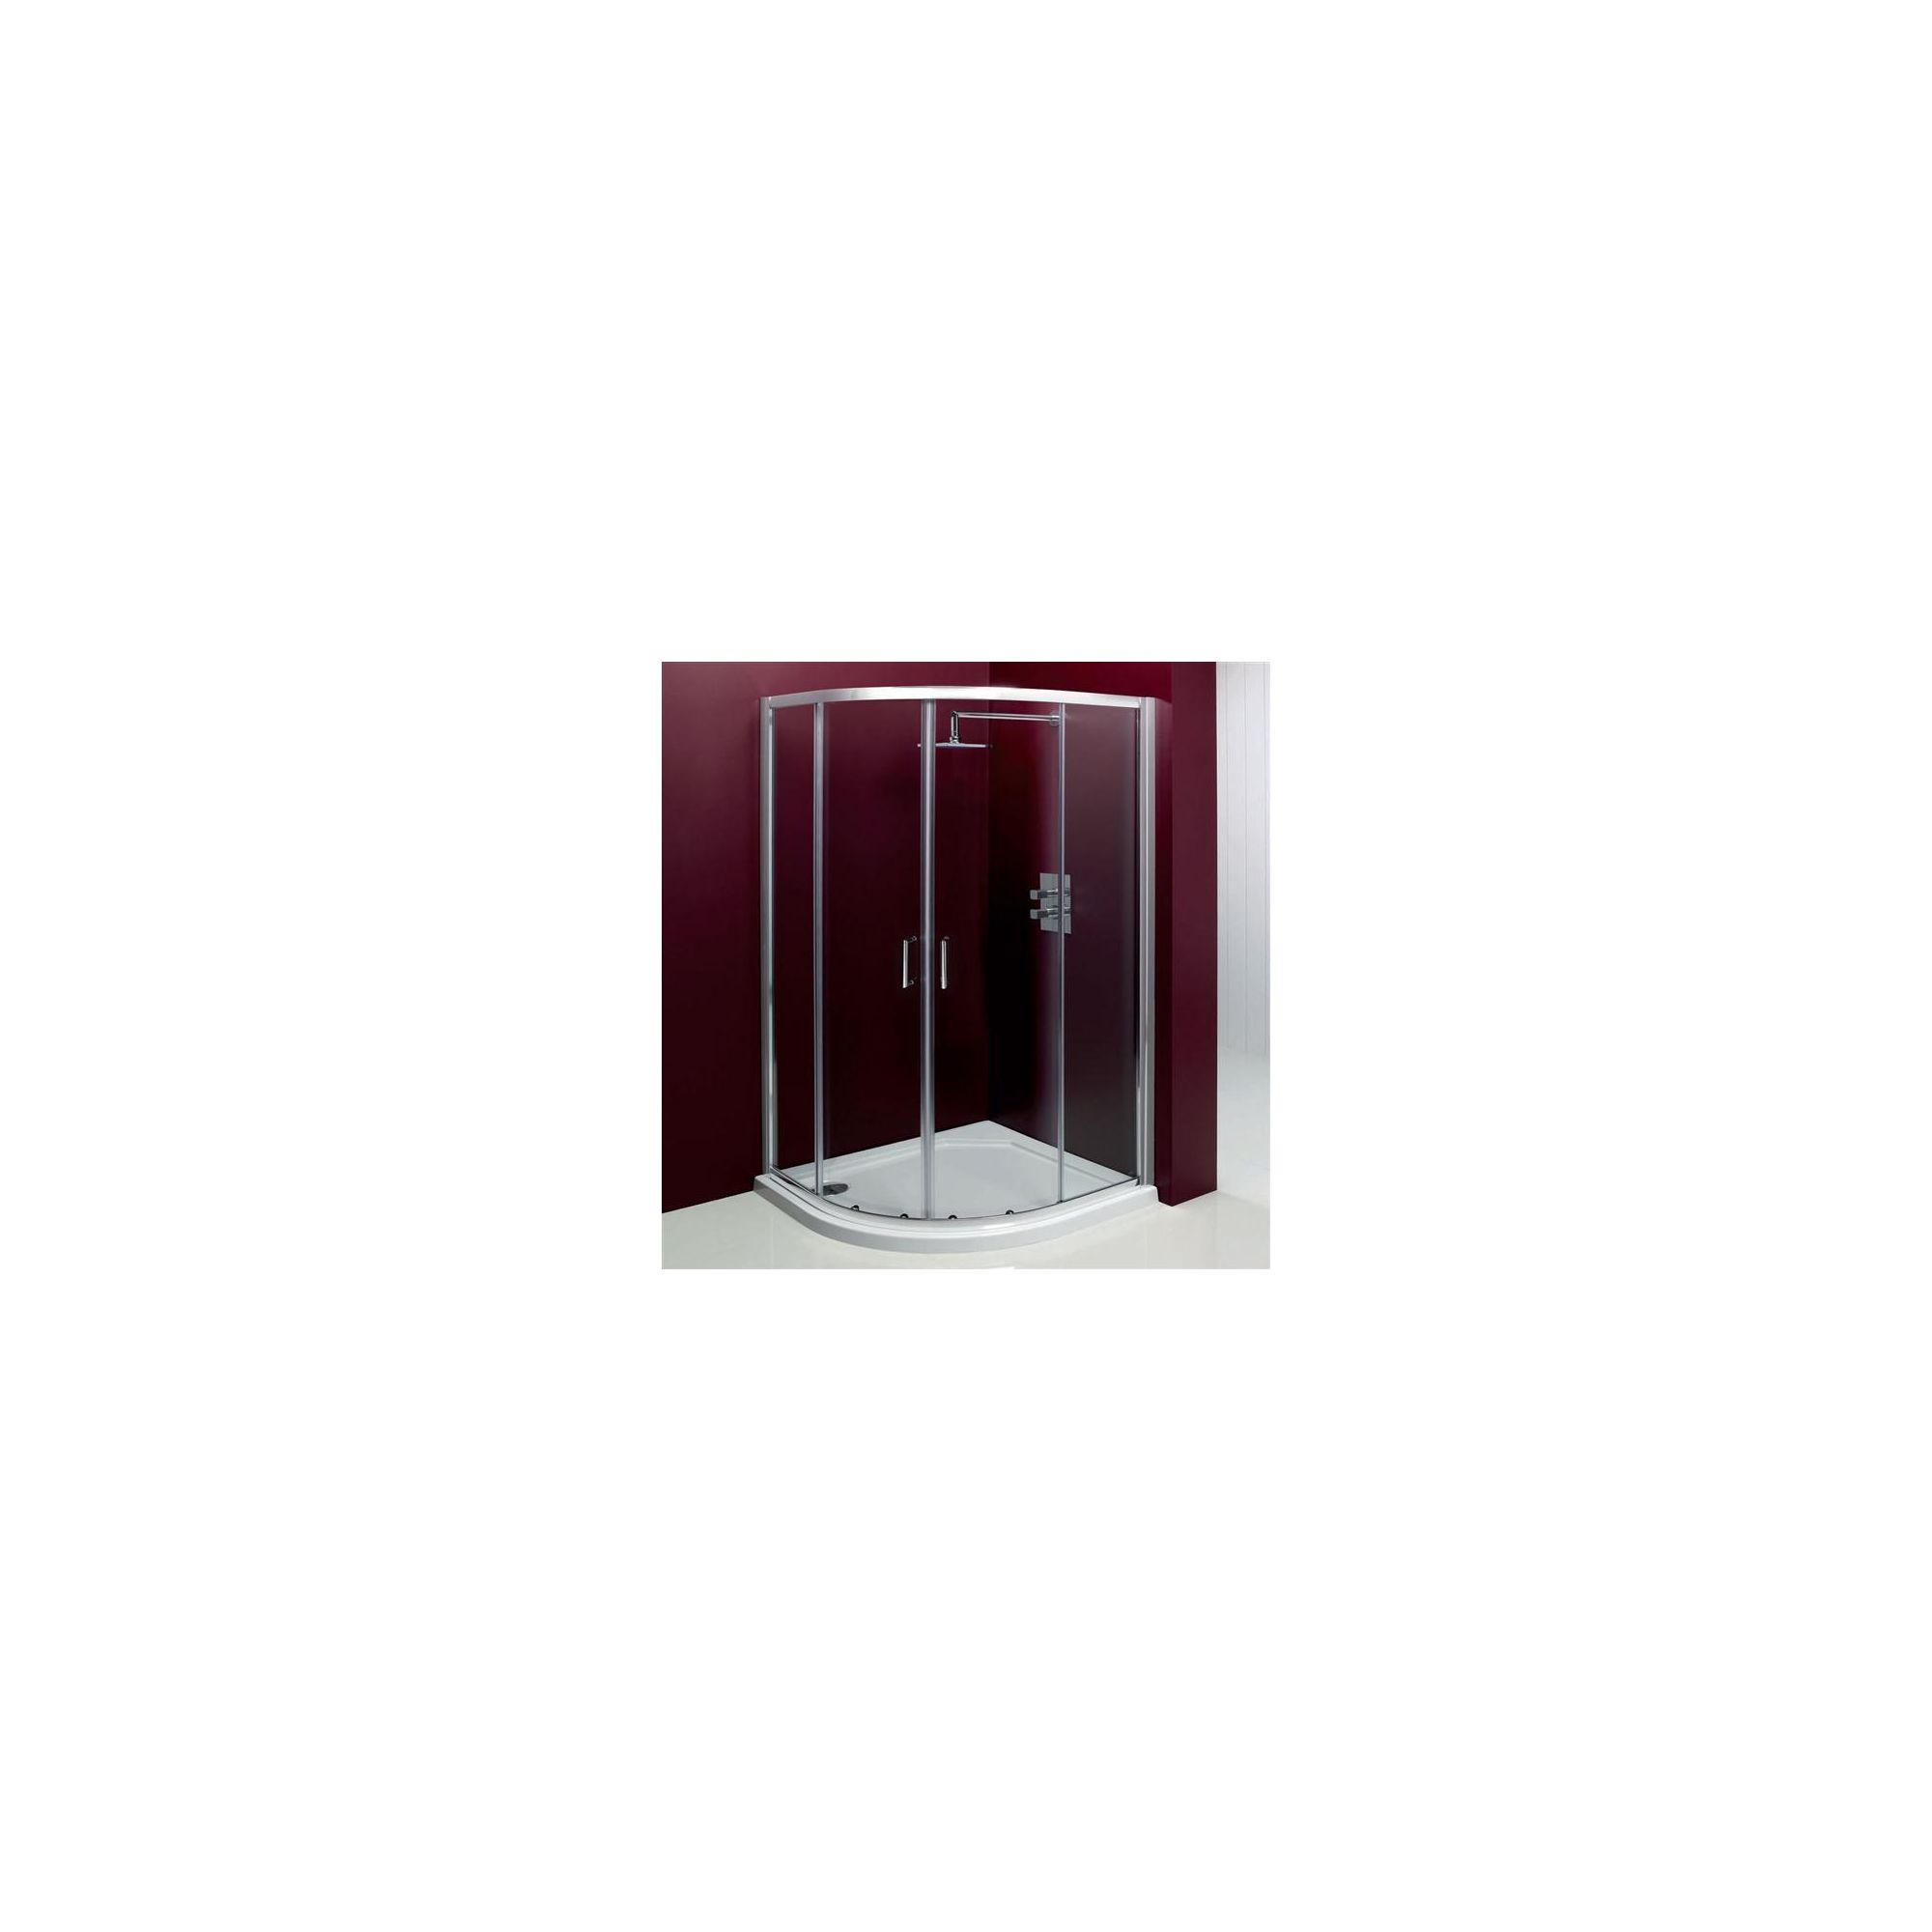 Merlyn Vivid Entree Quadrant Shower Enclosure, 800mm x 800mm, Low Profile Tray, 6mm Glass at Tesco Direct